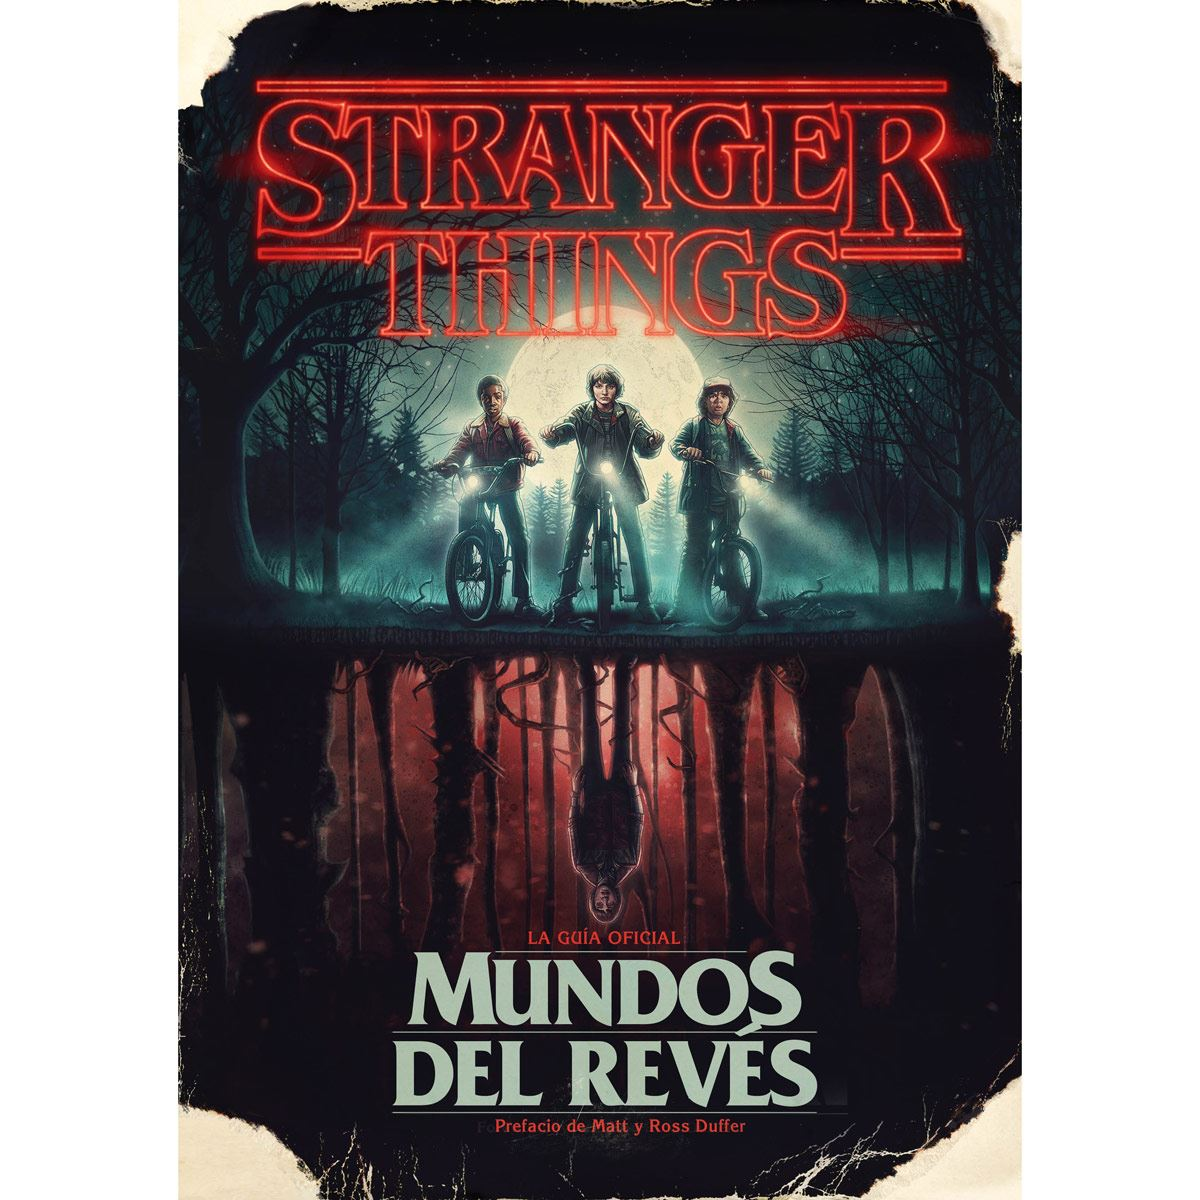 Stranger things. El mundo del reves